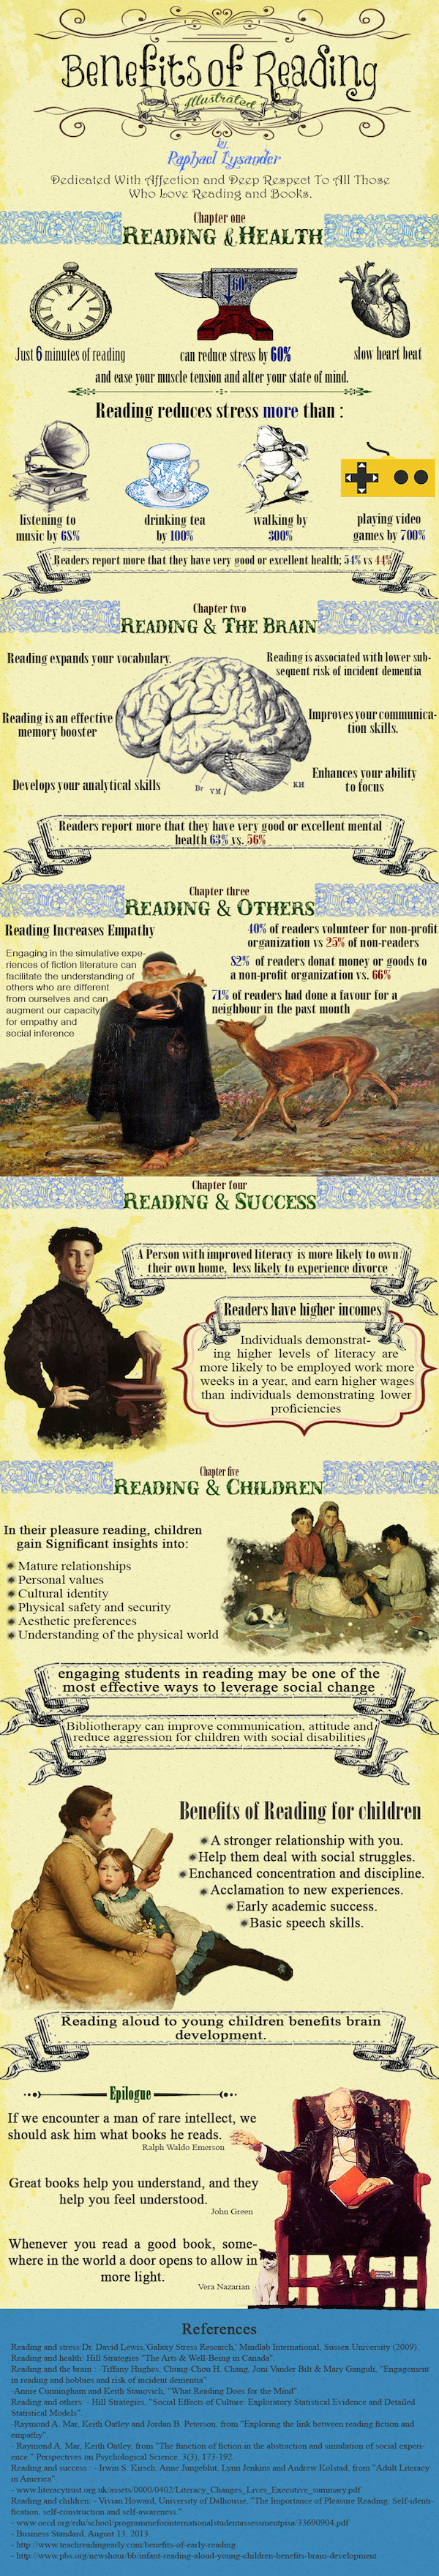 The benefits of reading can be intellectual, social, and spiritual.